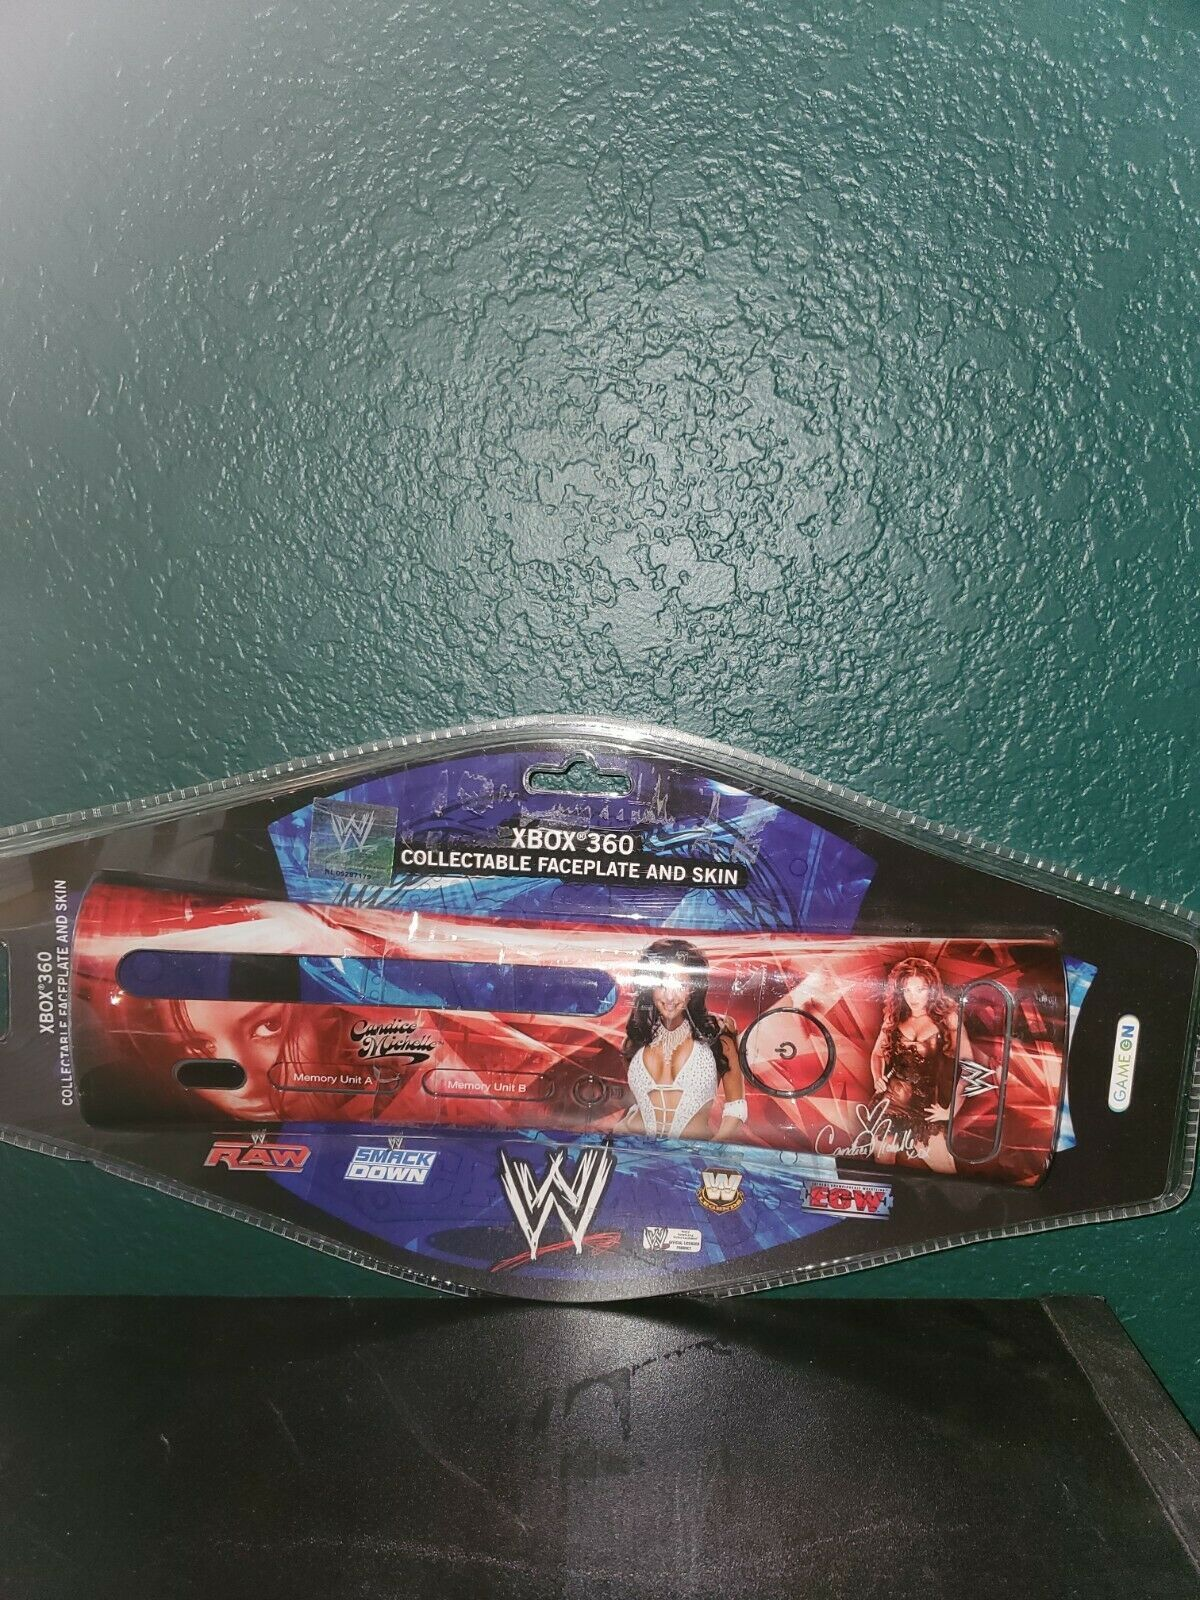 Xbox 360 Wwe Collectable Faceplate And Skin Candice Michelle - $26.13